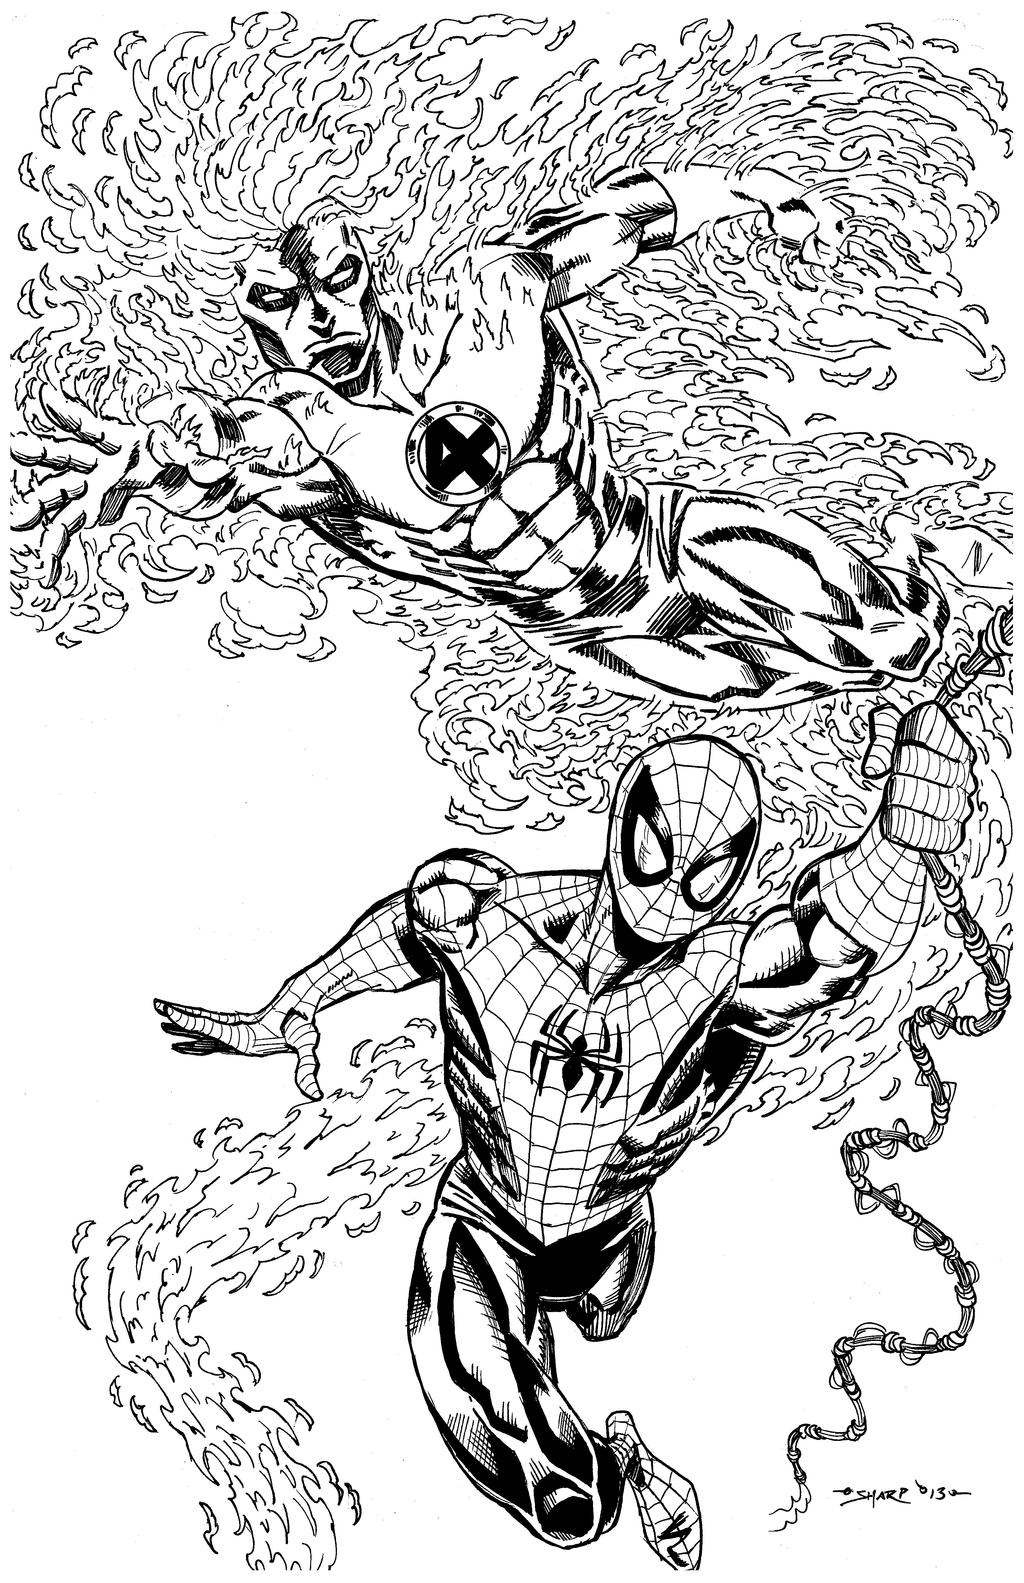 Coloring Pages Human Torch Coloring Pages spider manhuman torch commission by fanboy67 on deviantart fanboy67